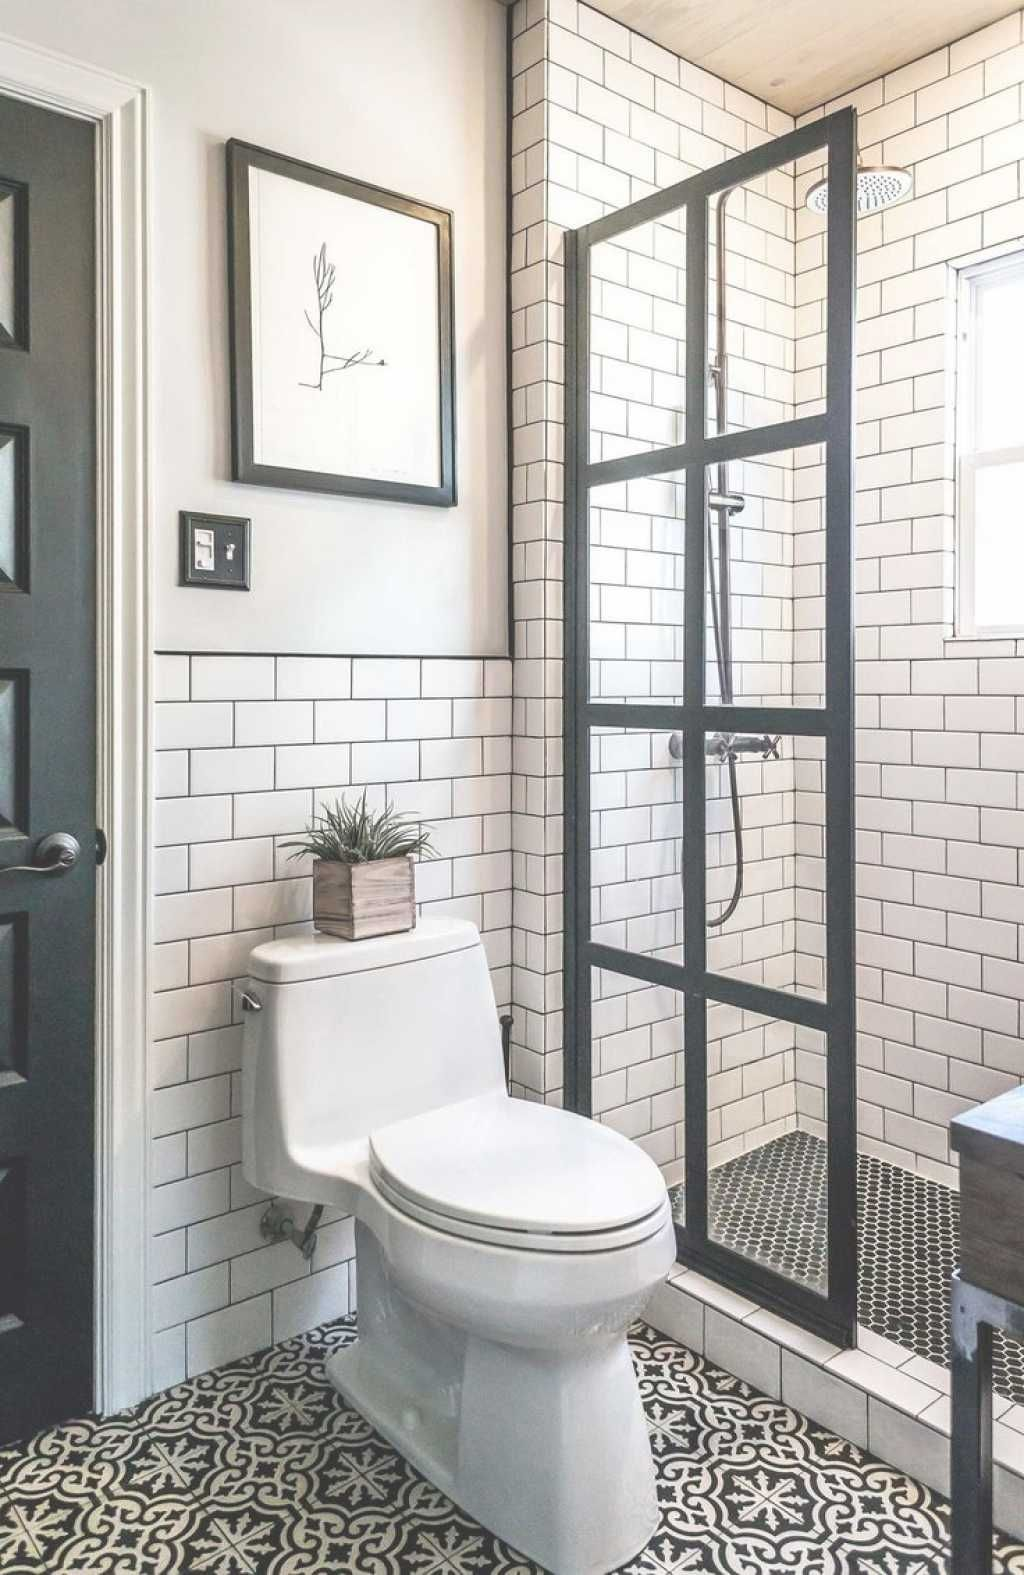 small bathroom design 50+ small master bathroom makeover ideas on a budget http://zoladecor.com/ small-master-bathroom-makeover-ideas-on-a-budget QUREXJE